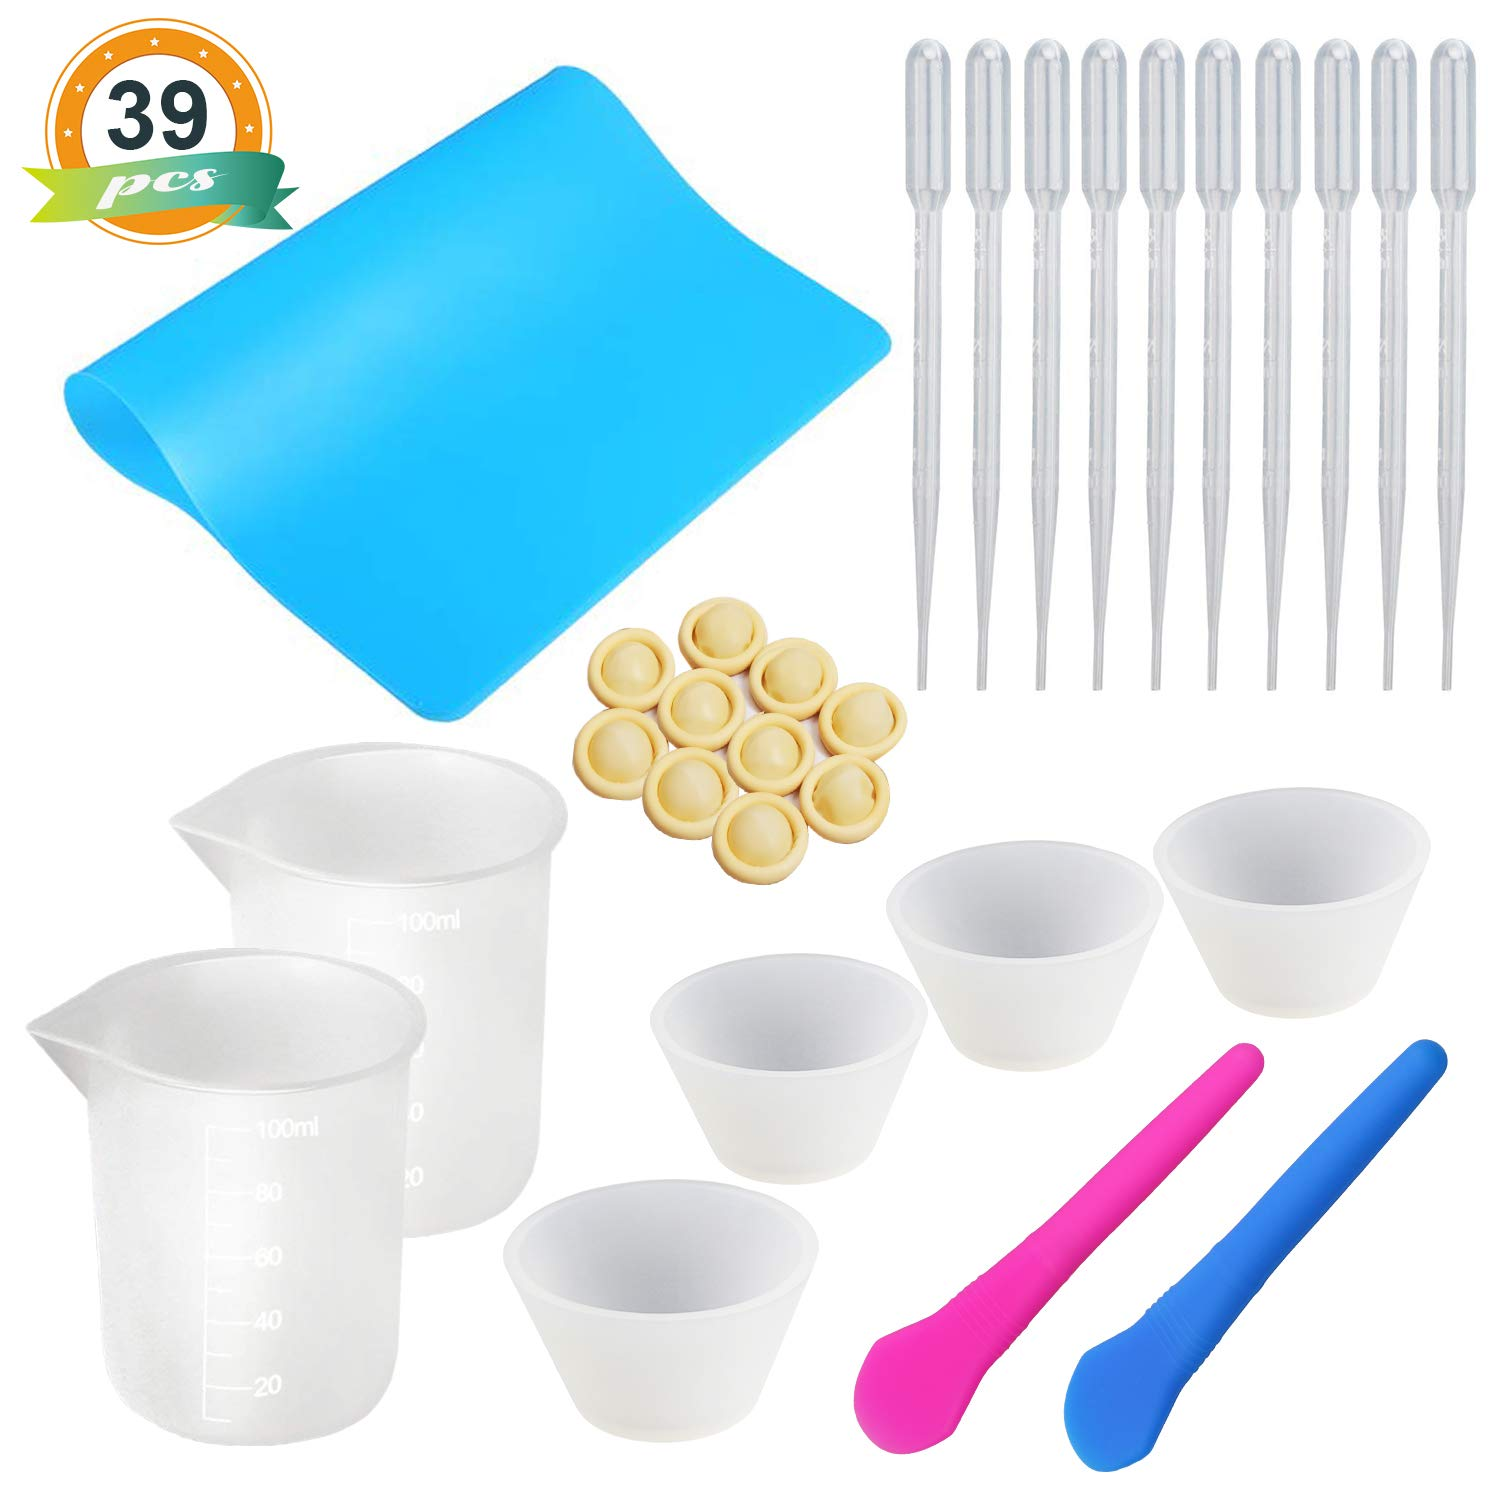 Silicone Mixing Cups for Resin LET'S RESIN Silicone Measuring Cups 100ml, Epoxy Resin Mixing Cups with Silicone Mat, 2PCS Silicone Stir Stick, 10 PCS Plastic Transfer Pipettes, 20PCS Finger Cots by LET'S RESIN